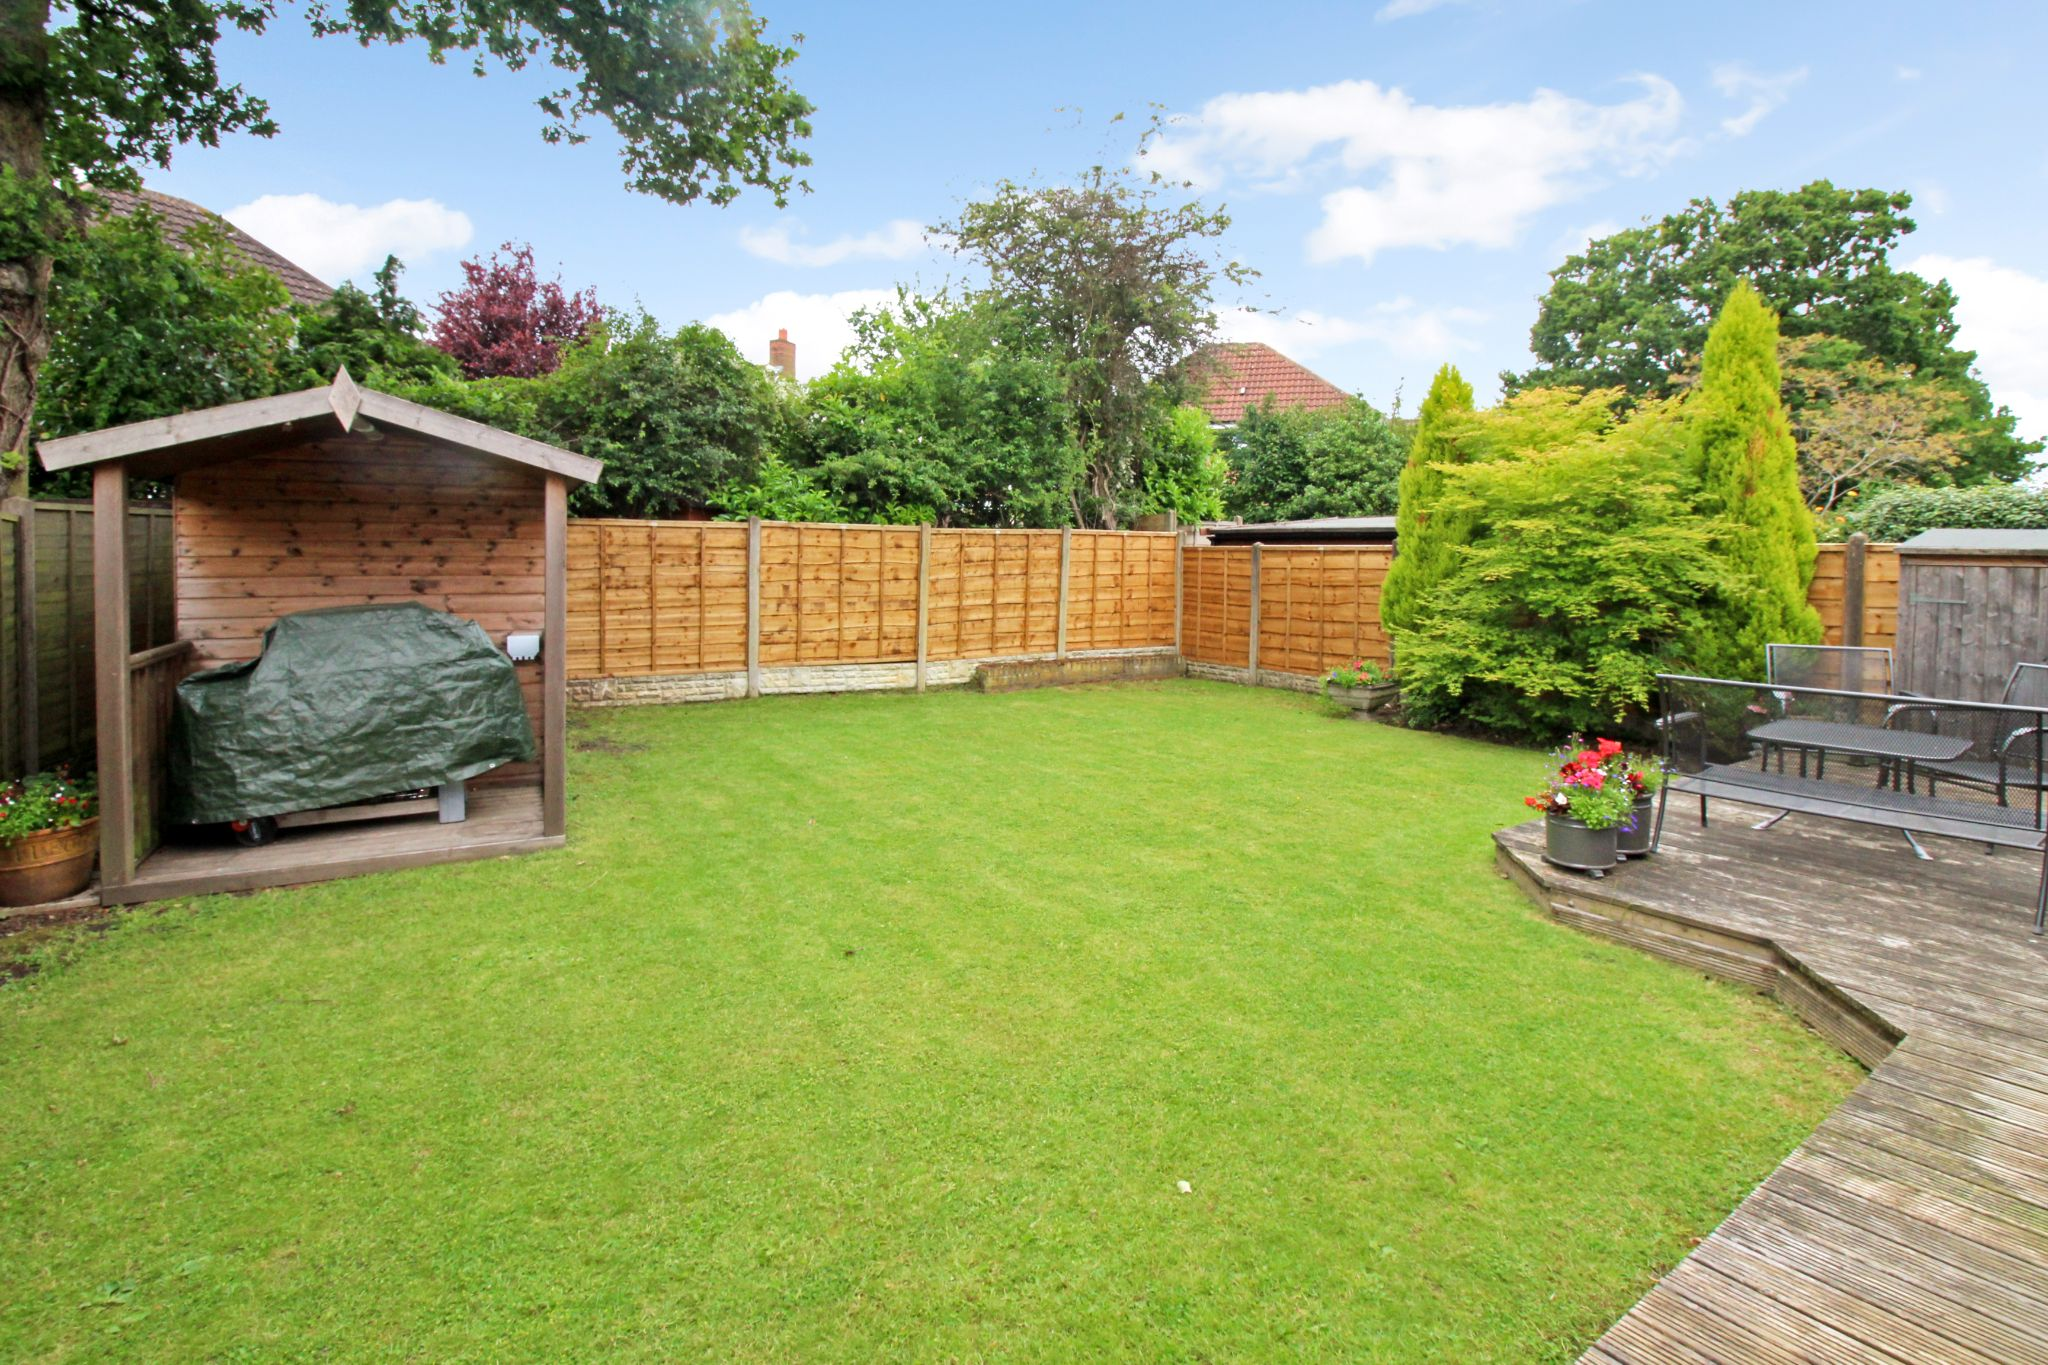 4 bedroom detached house SSTC in Solihull - Photograph 8.